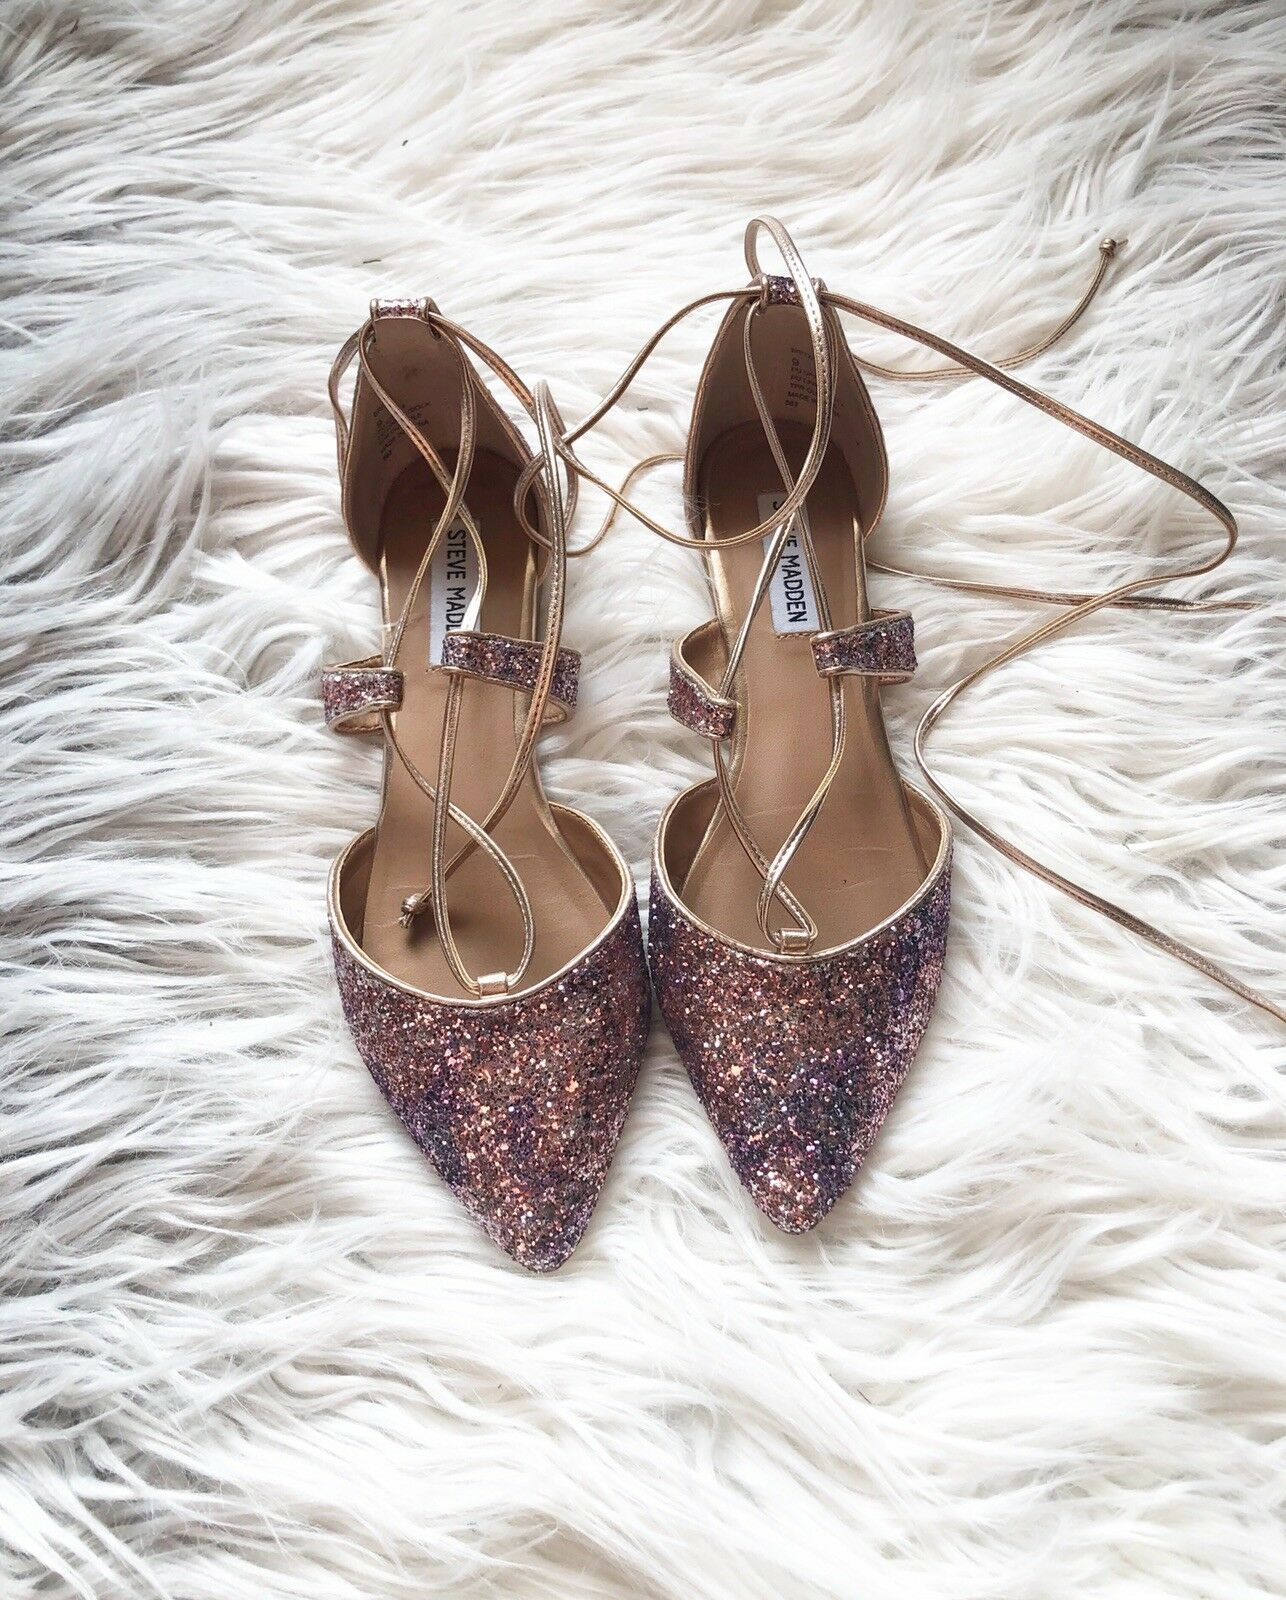 Steve Madden Madden Madden Women's Britzi Pointed Lace-Up Glitter shoes Flats Size 9 a10534